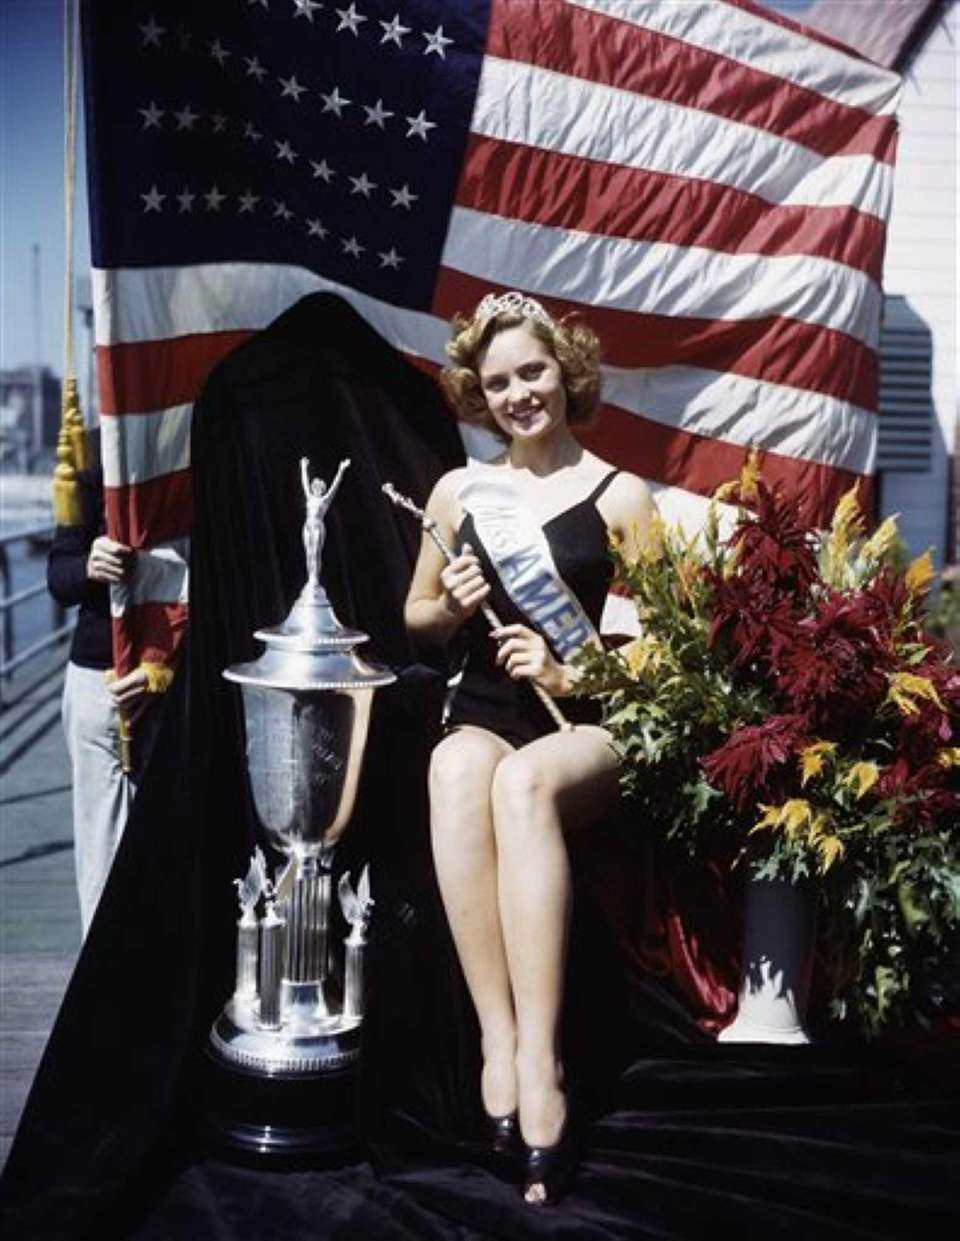 Jean Bartel, of Los Angeles, was crowned Miss